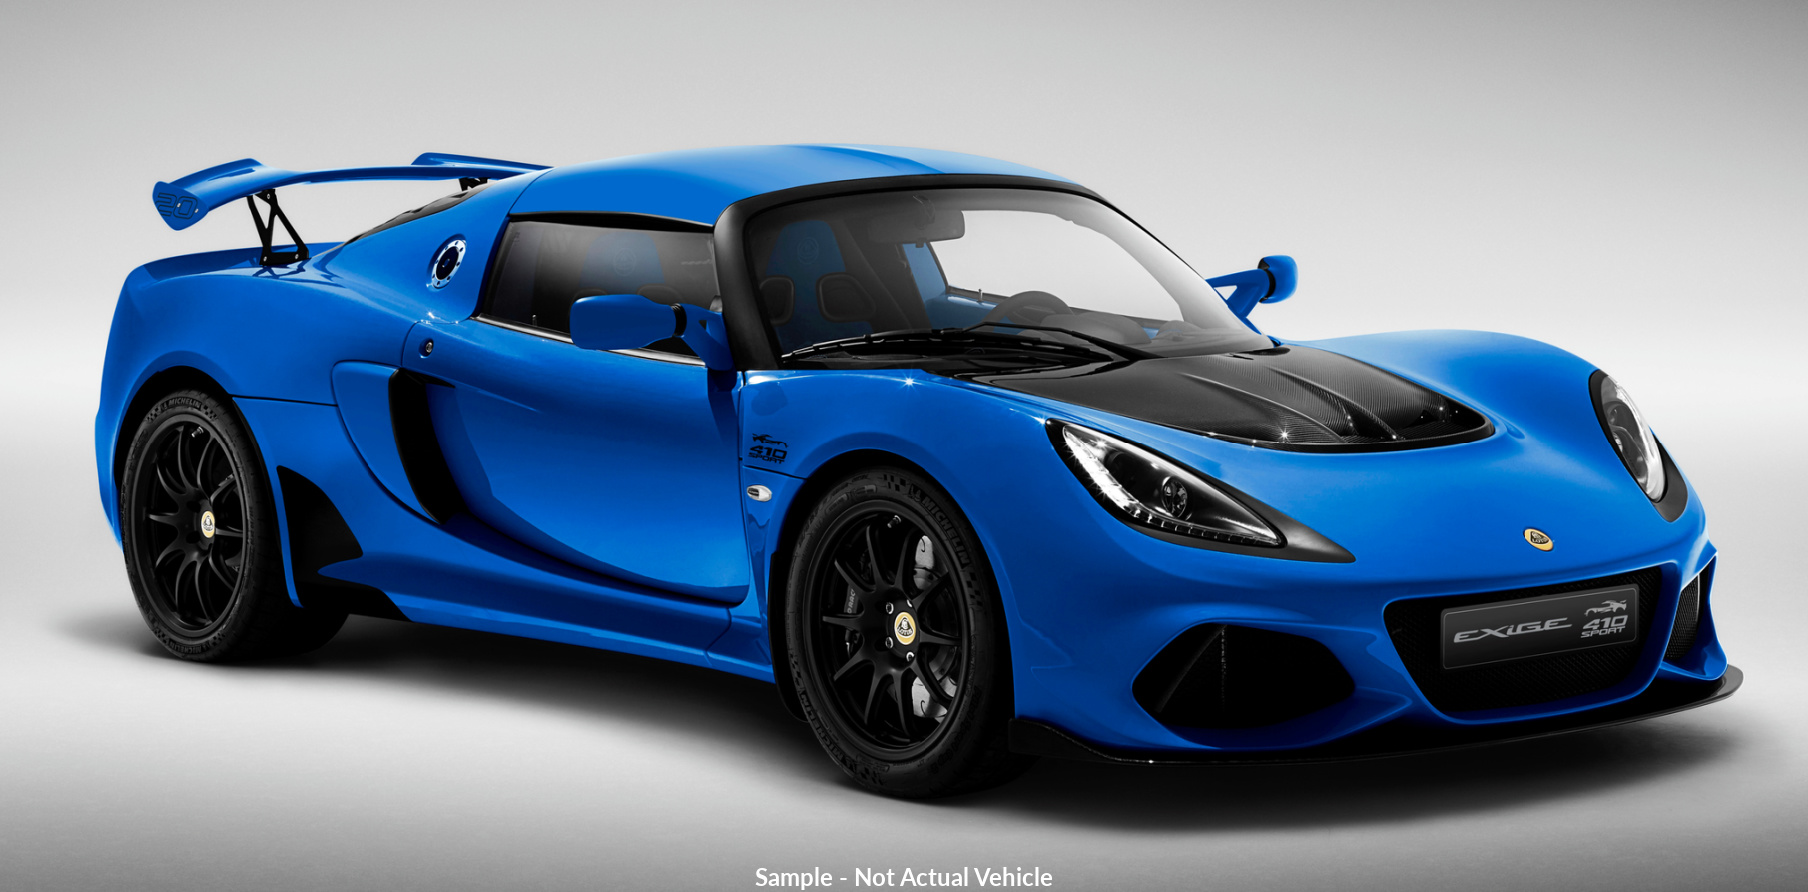 Lotus Exige Sport 410 for sale Perth